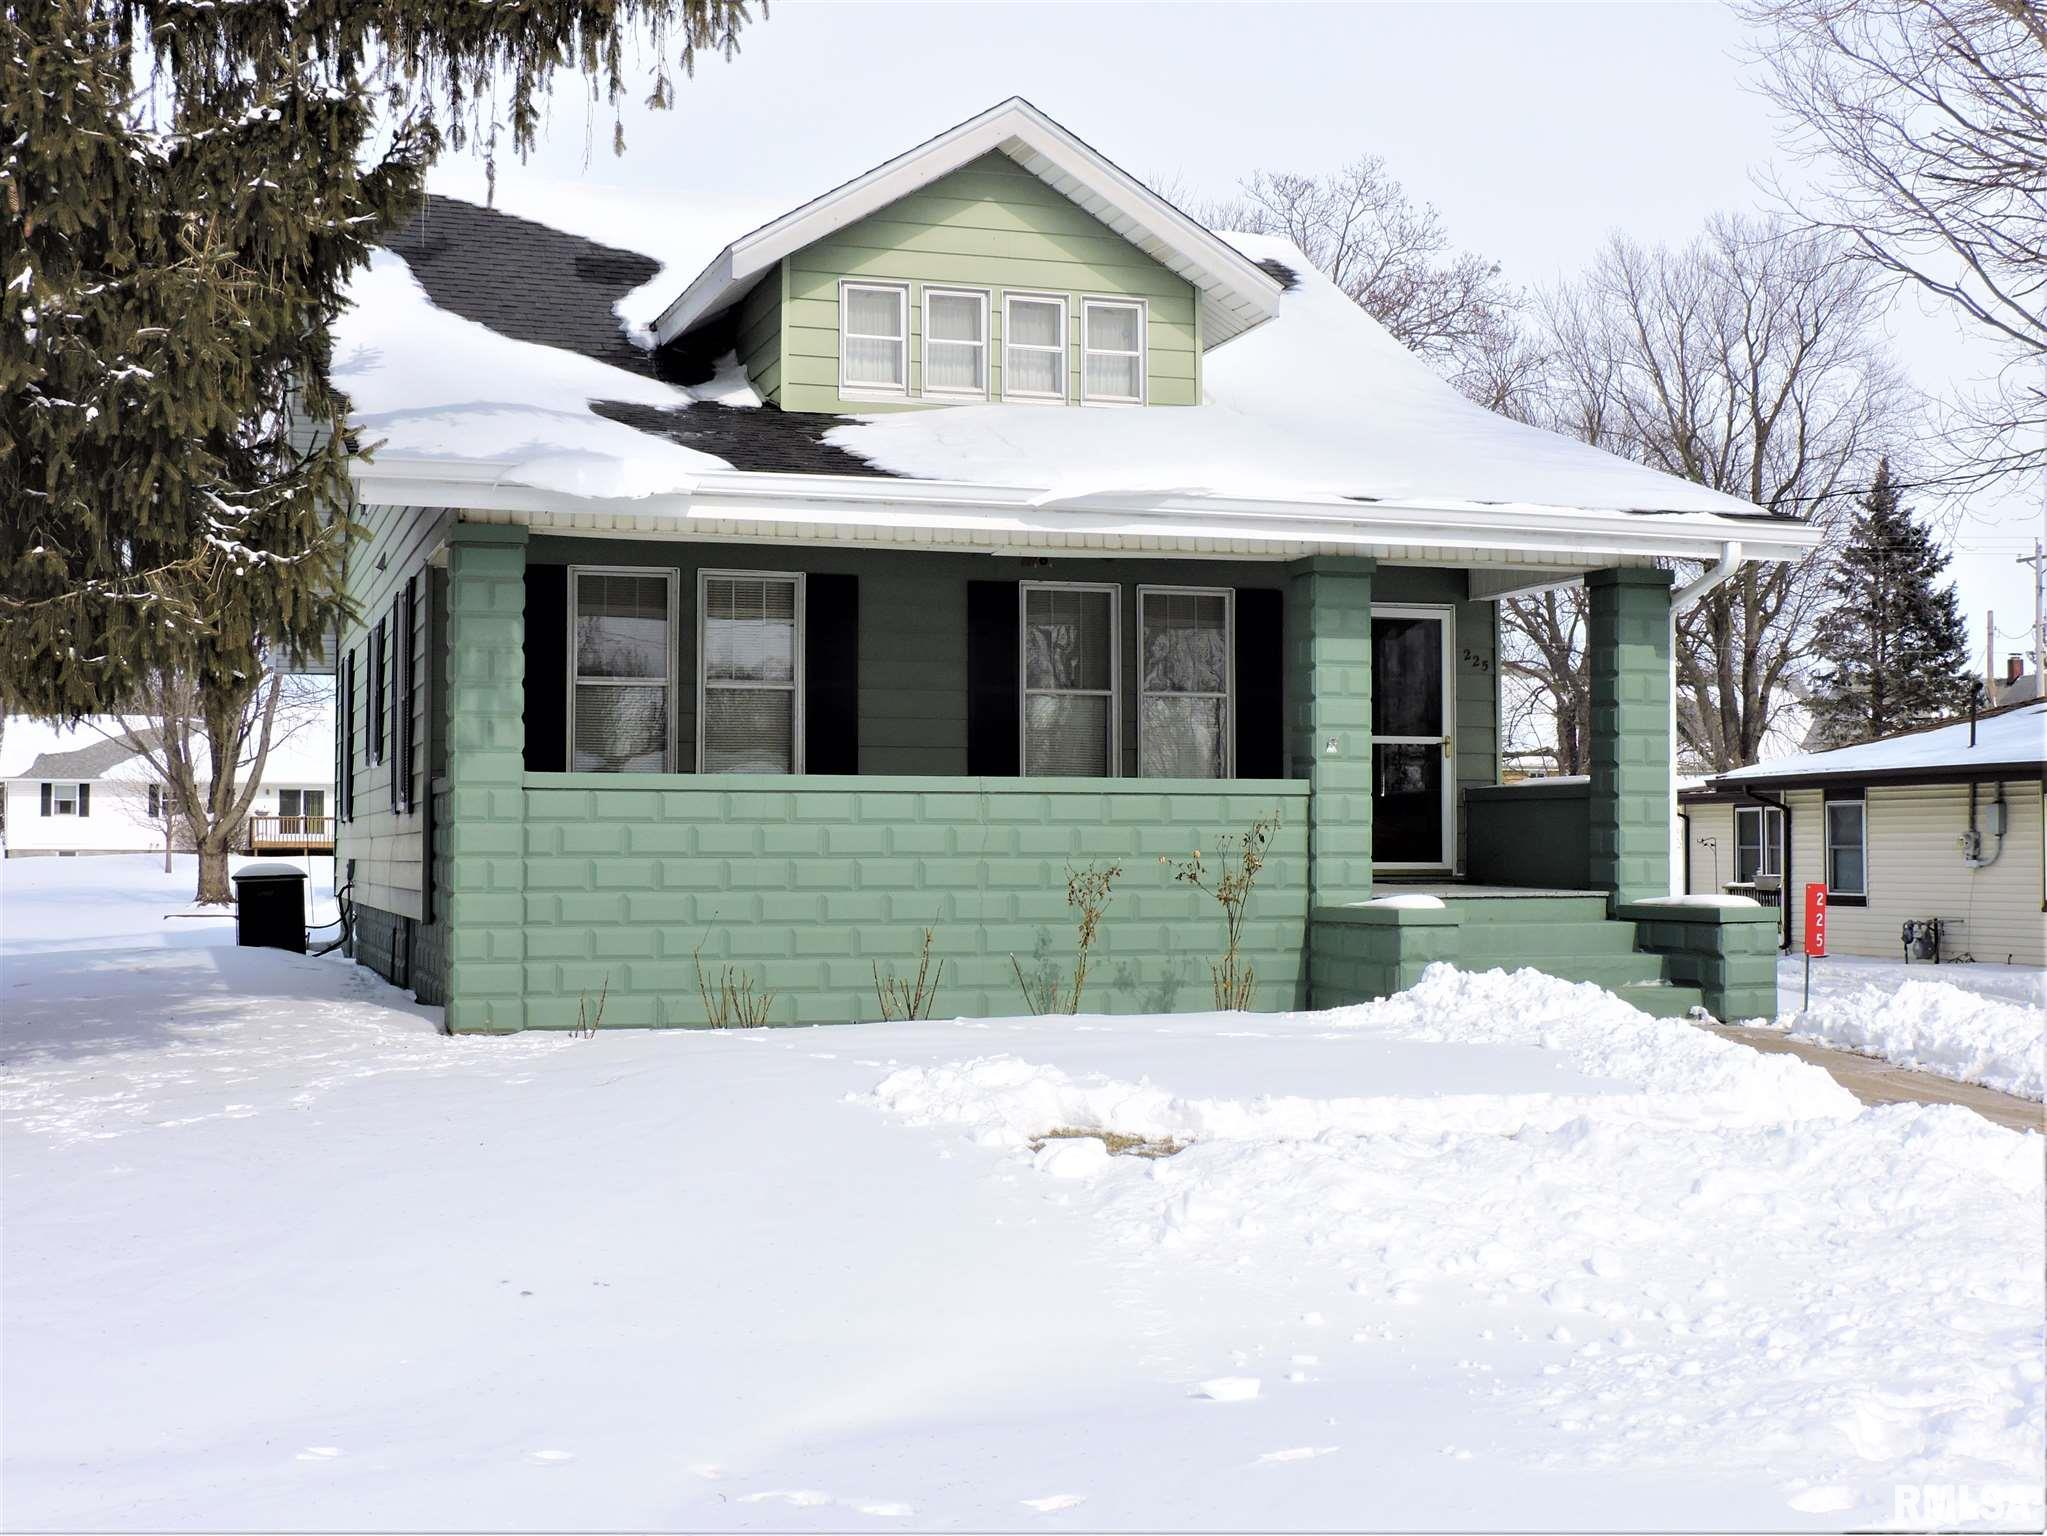 225 W KNOXVILLE Property Photo - Brimfield, IL real estate listing